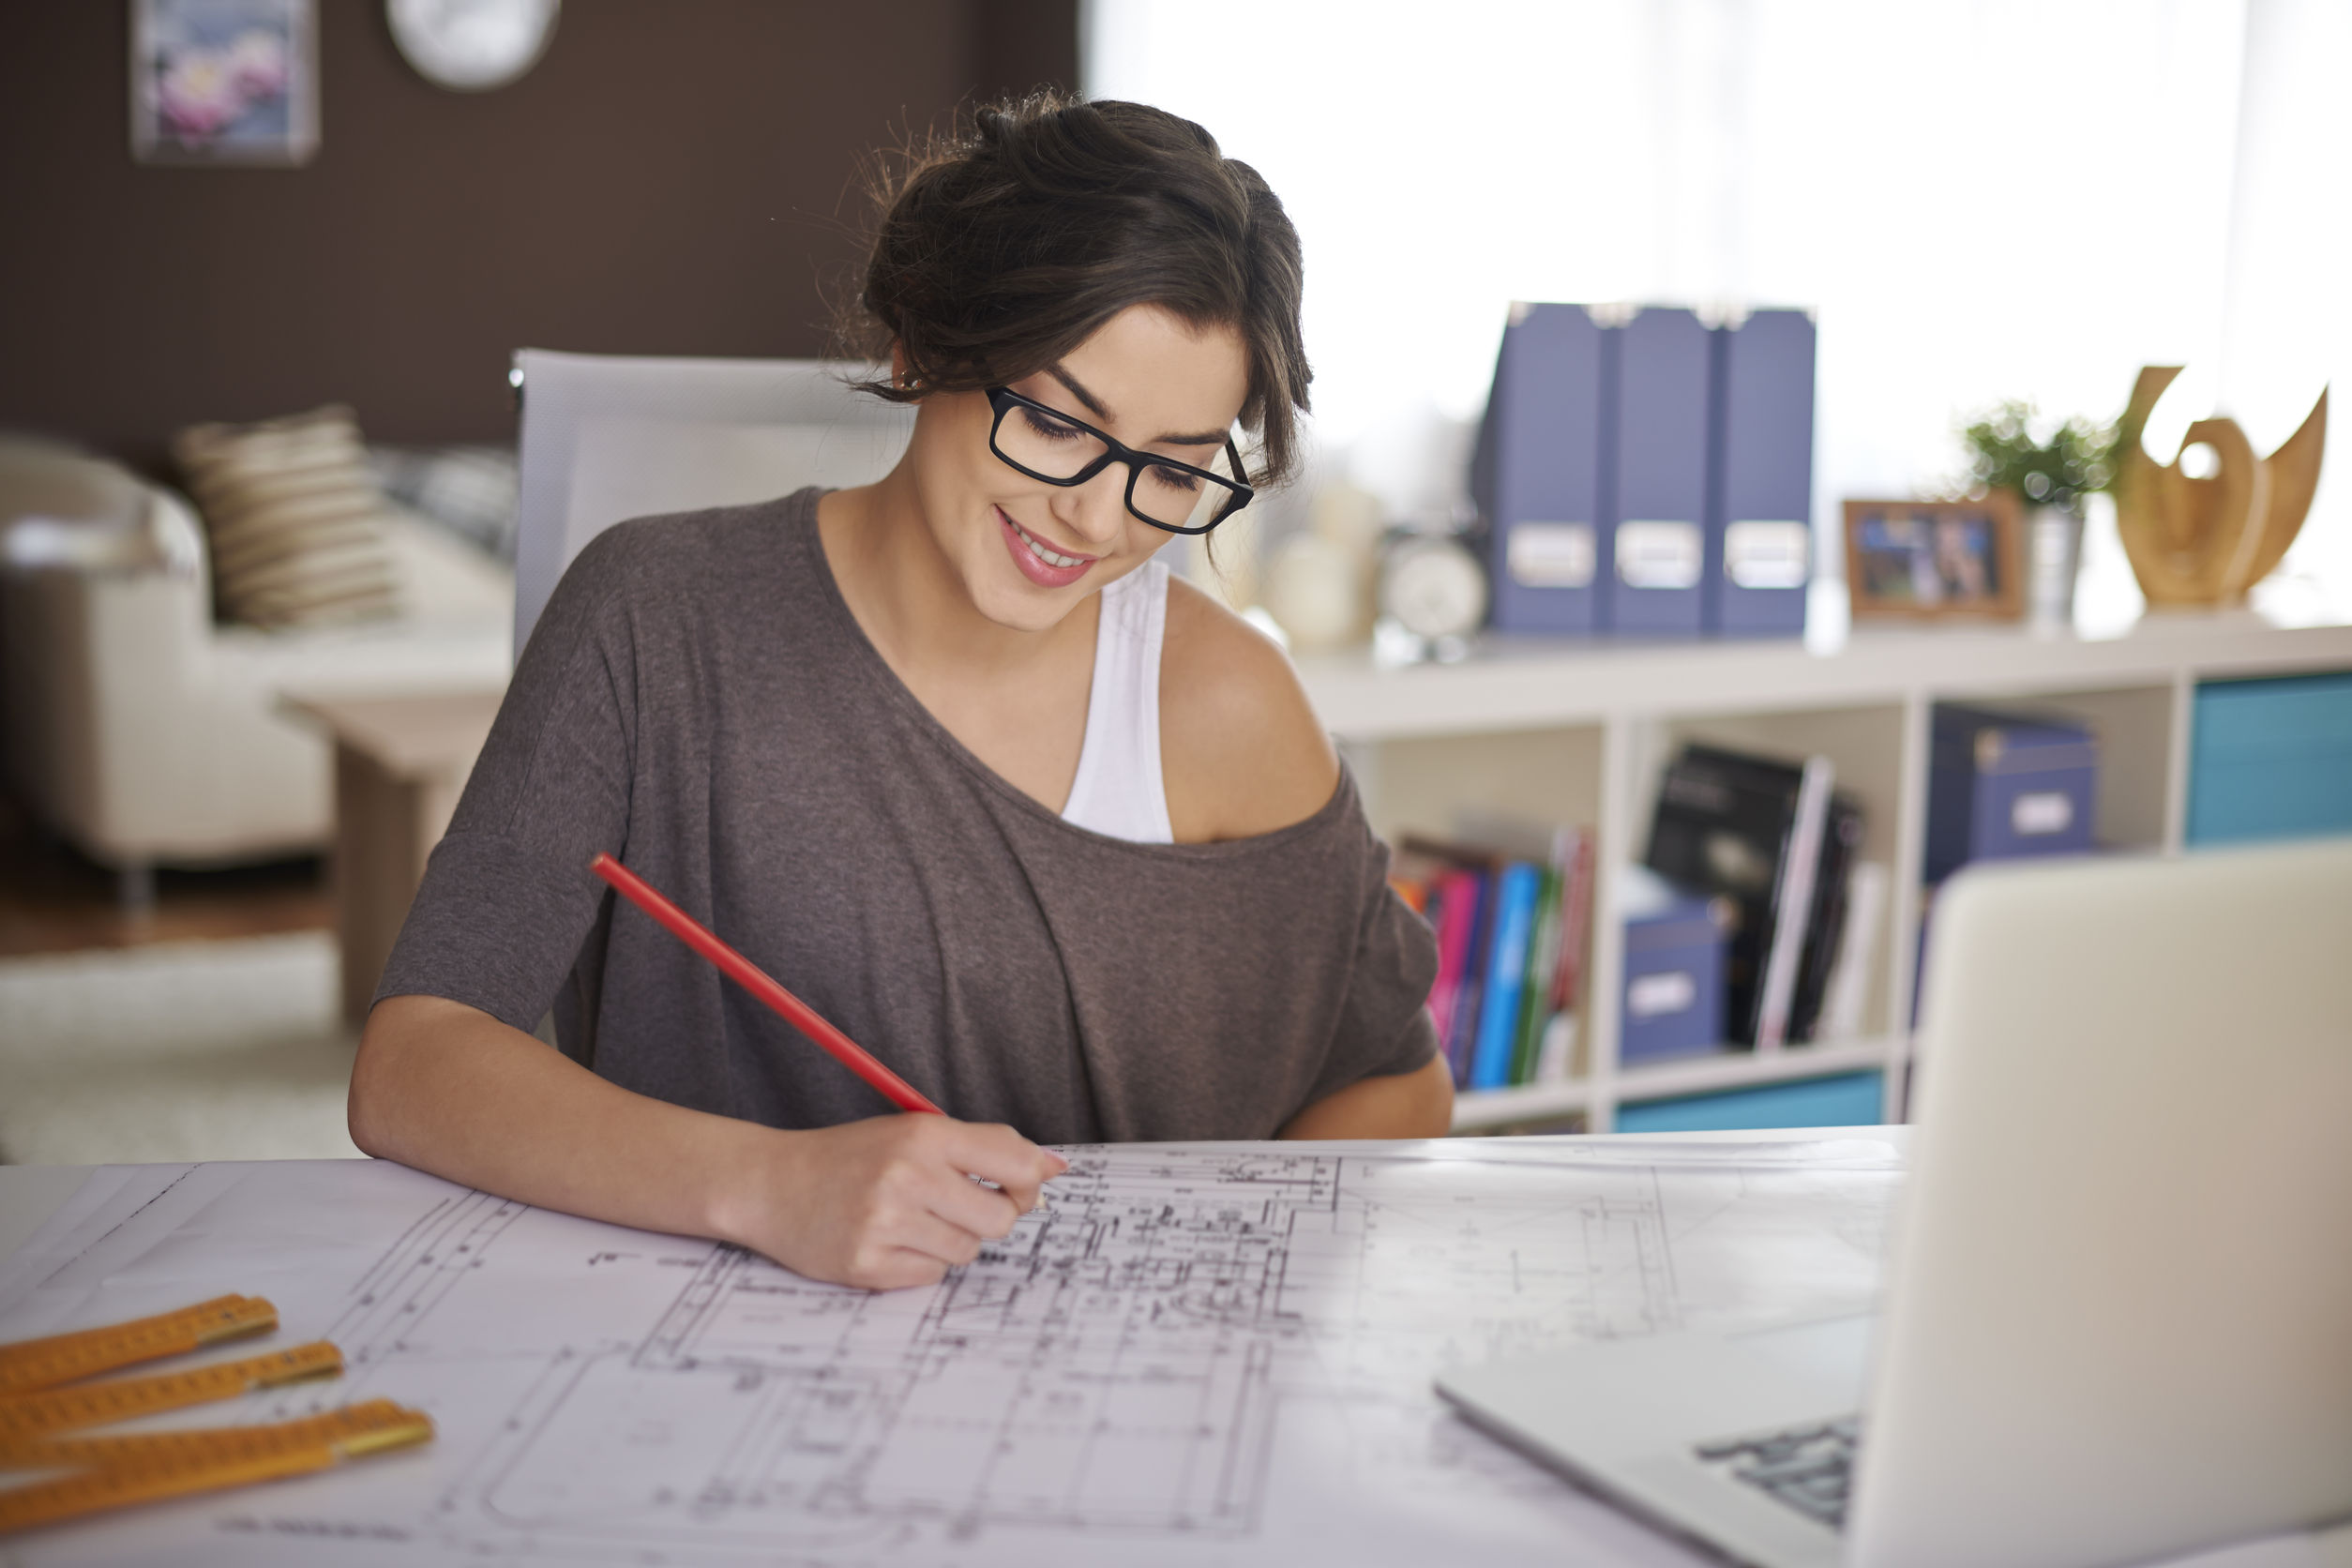 37877084 - freelancer during the work in home office